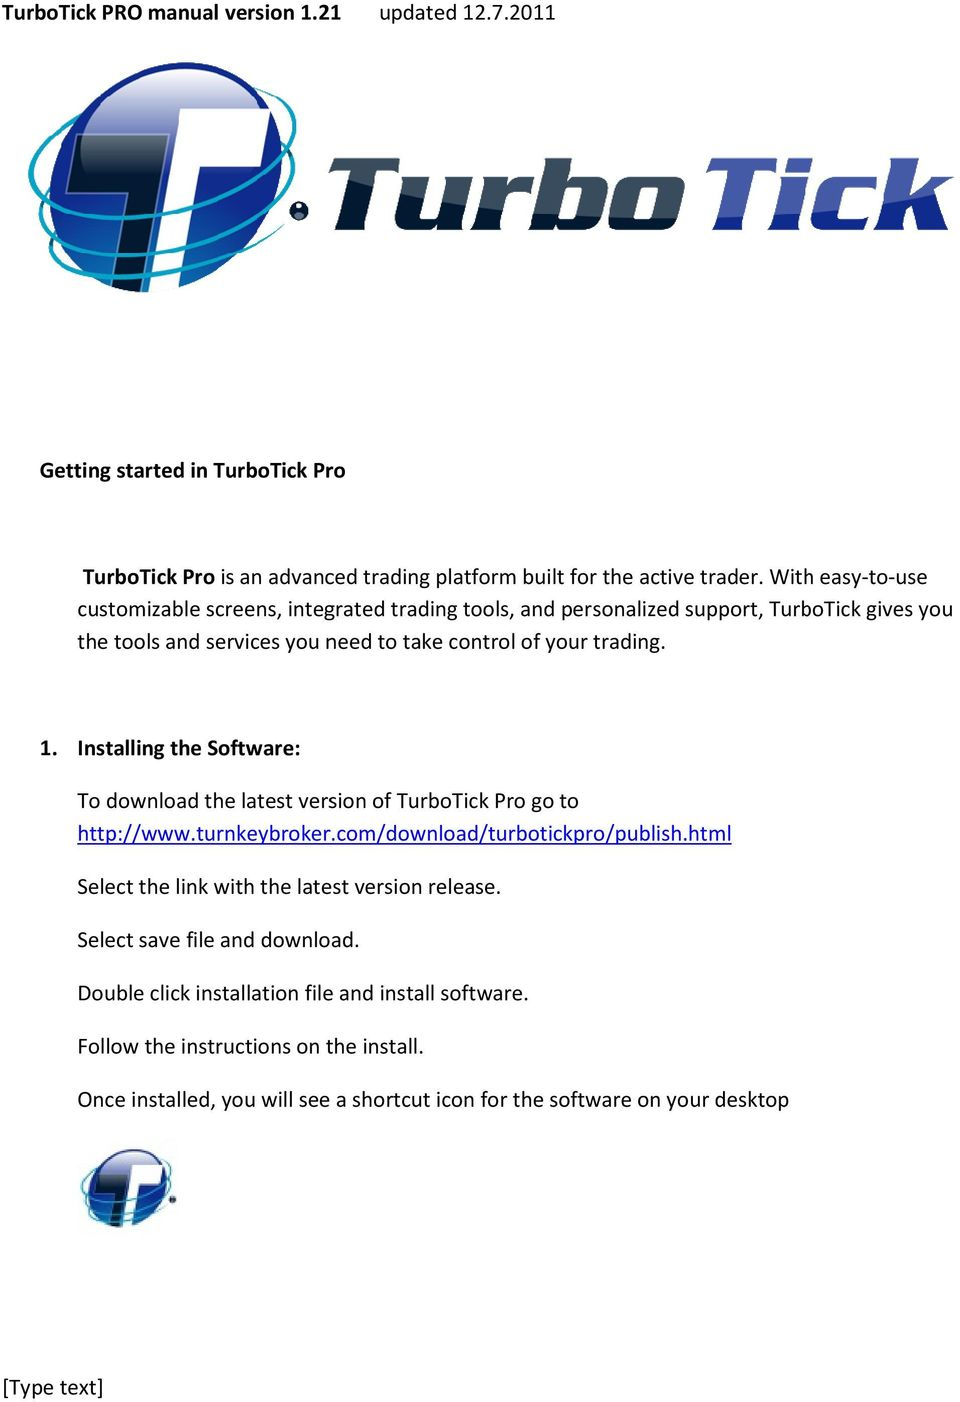 Installing the Software: To download the latest version of TurboTick Pro go to http://www.turnkeybroker.com/download/turbotickpro/publish.